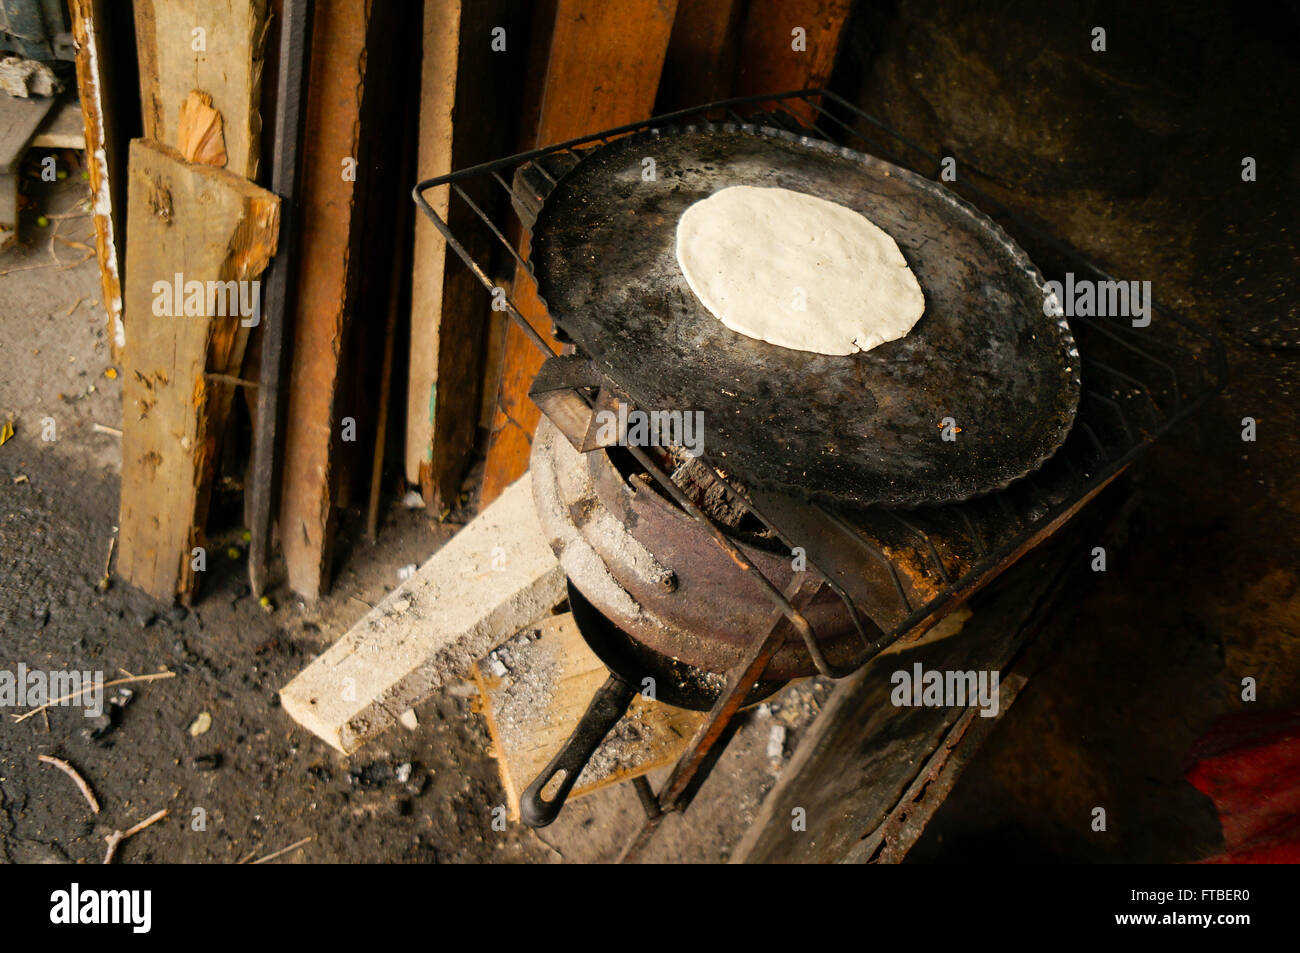 tortilla cooking on wood burning stove in Acapulco, Mexico - Stock Image